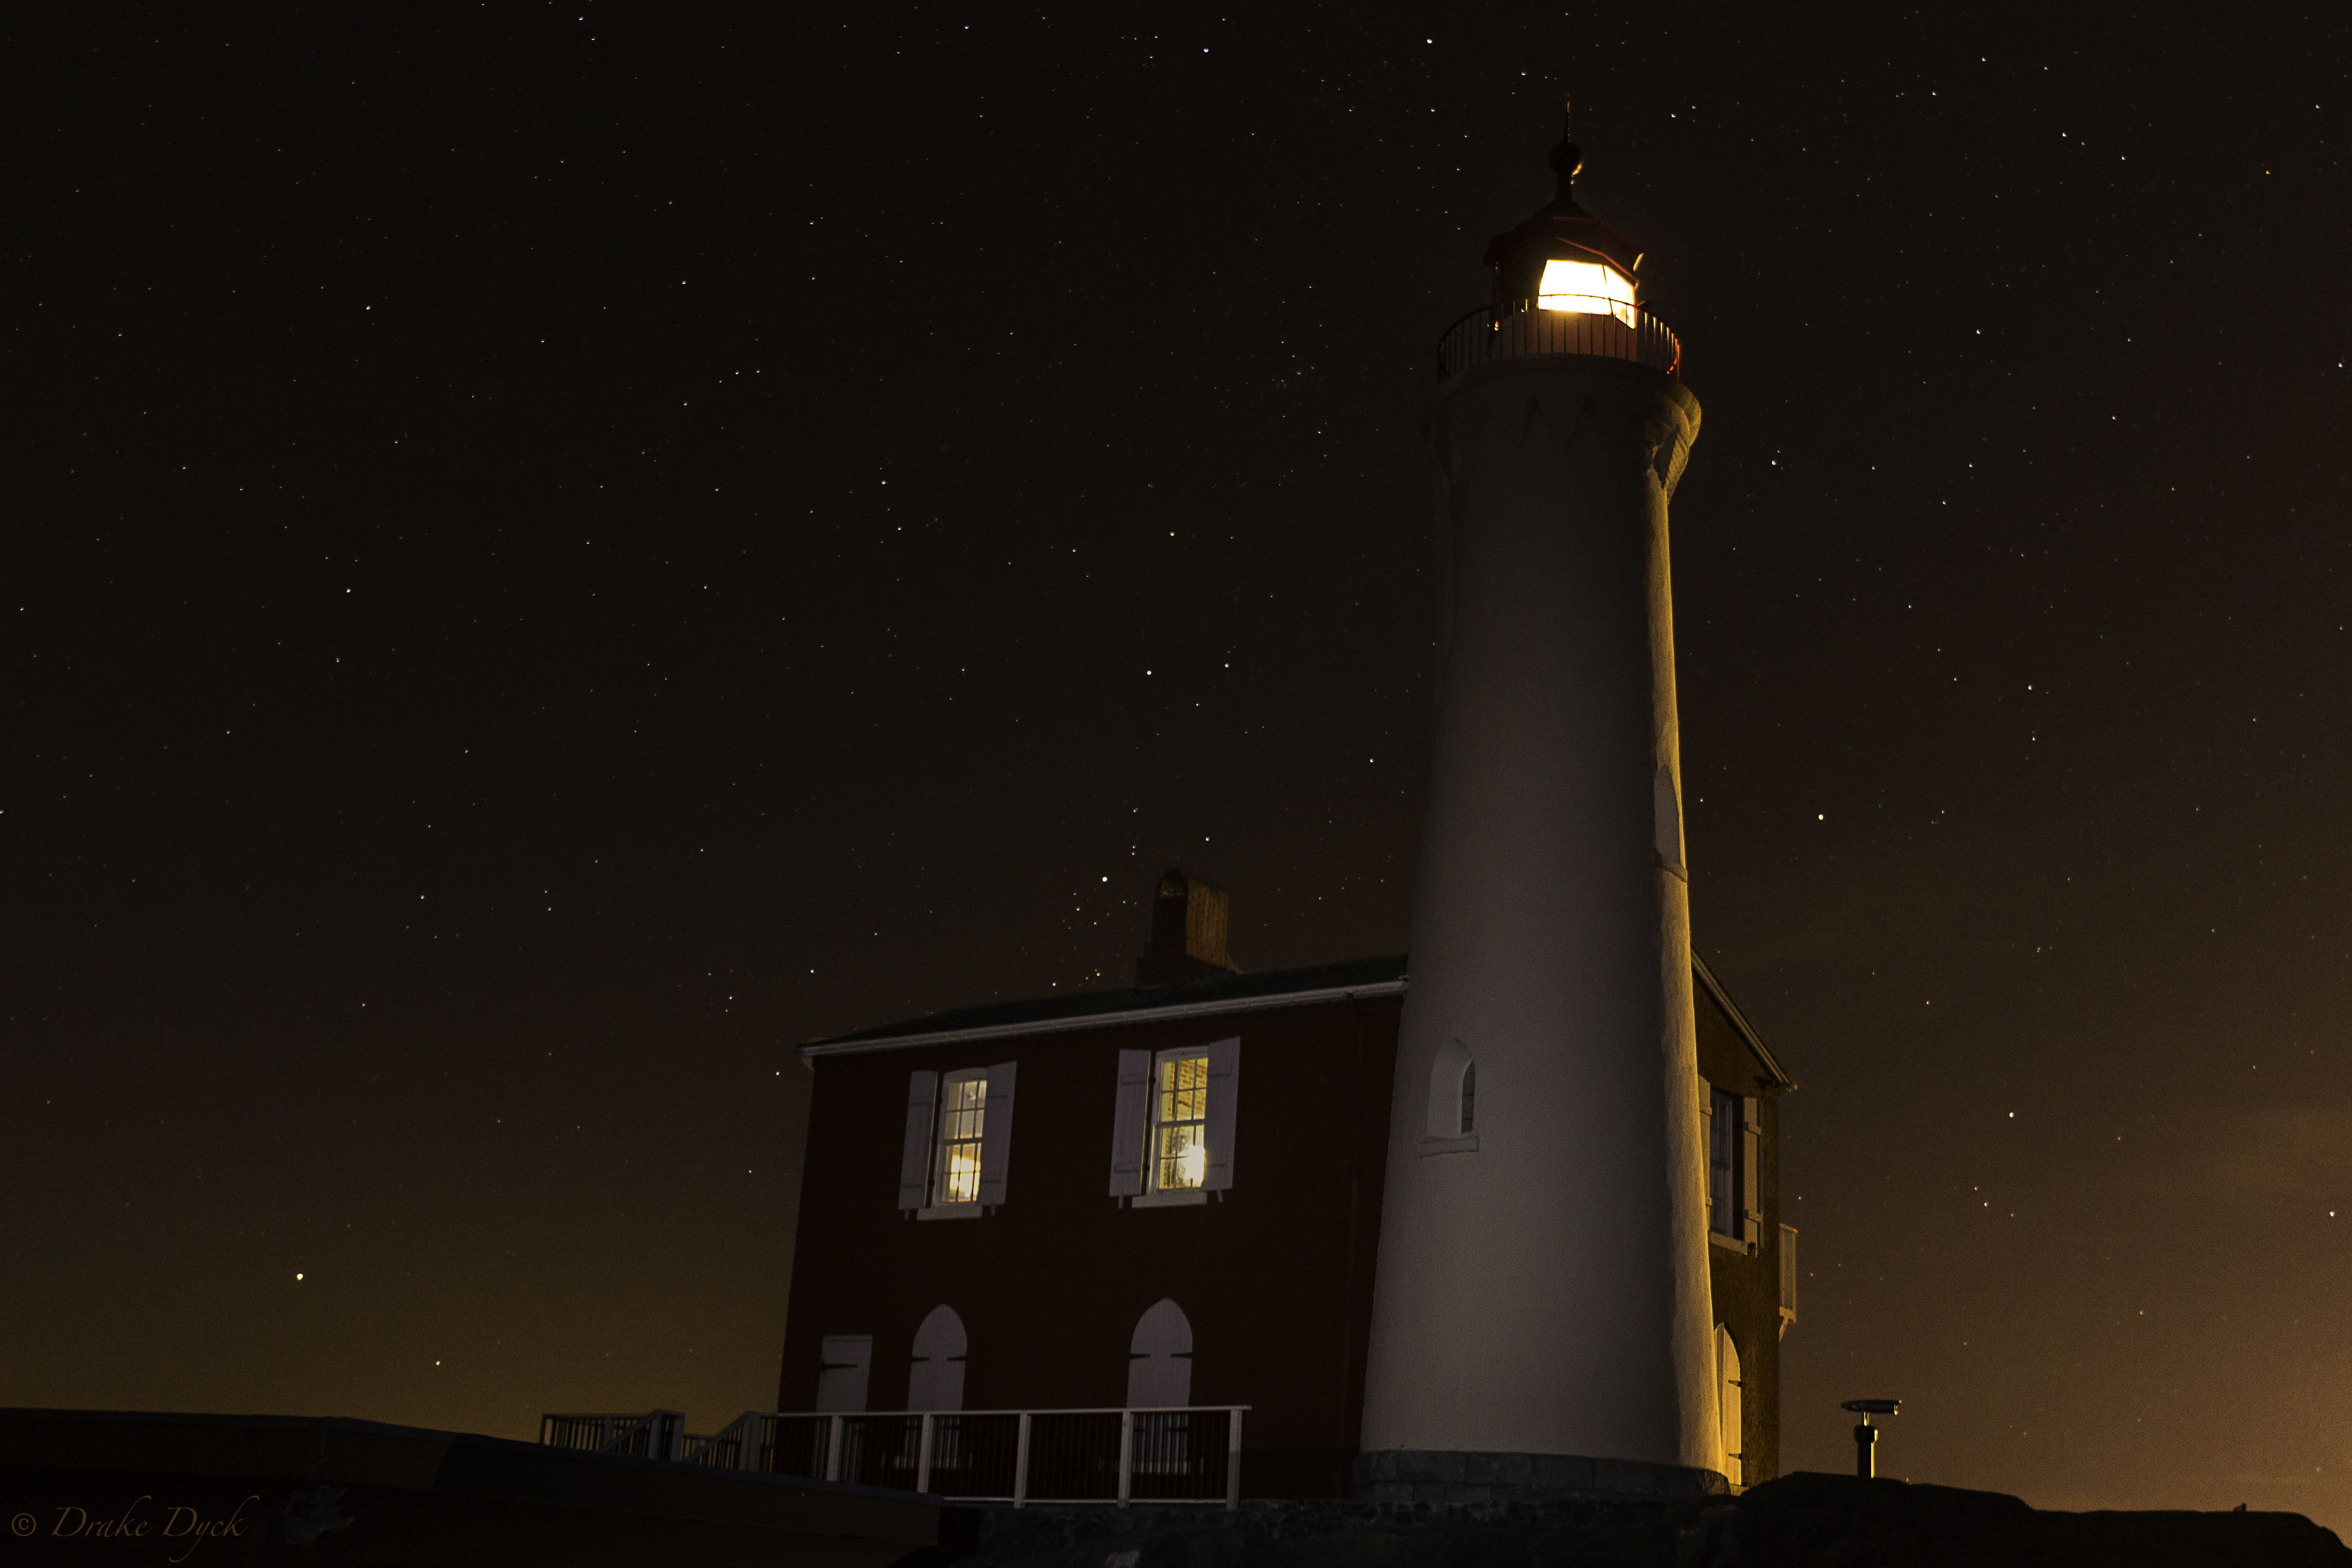 Fisgard Lighthouse after dark with stars in the sky